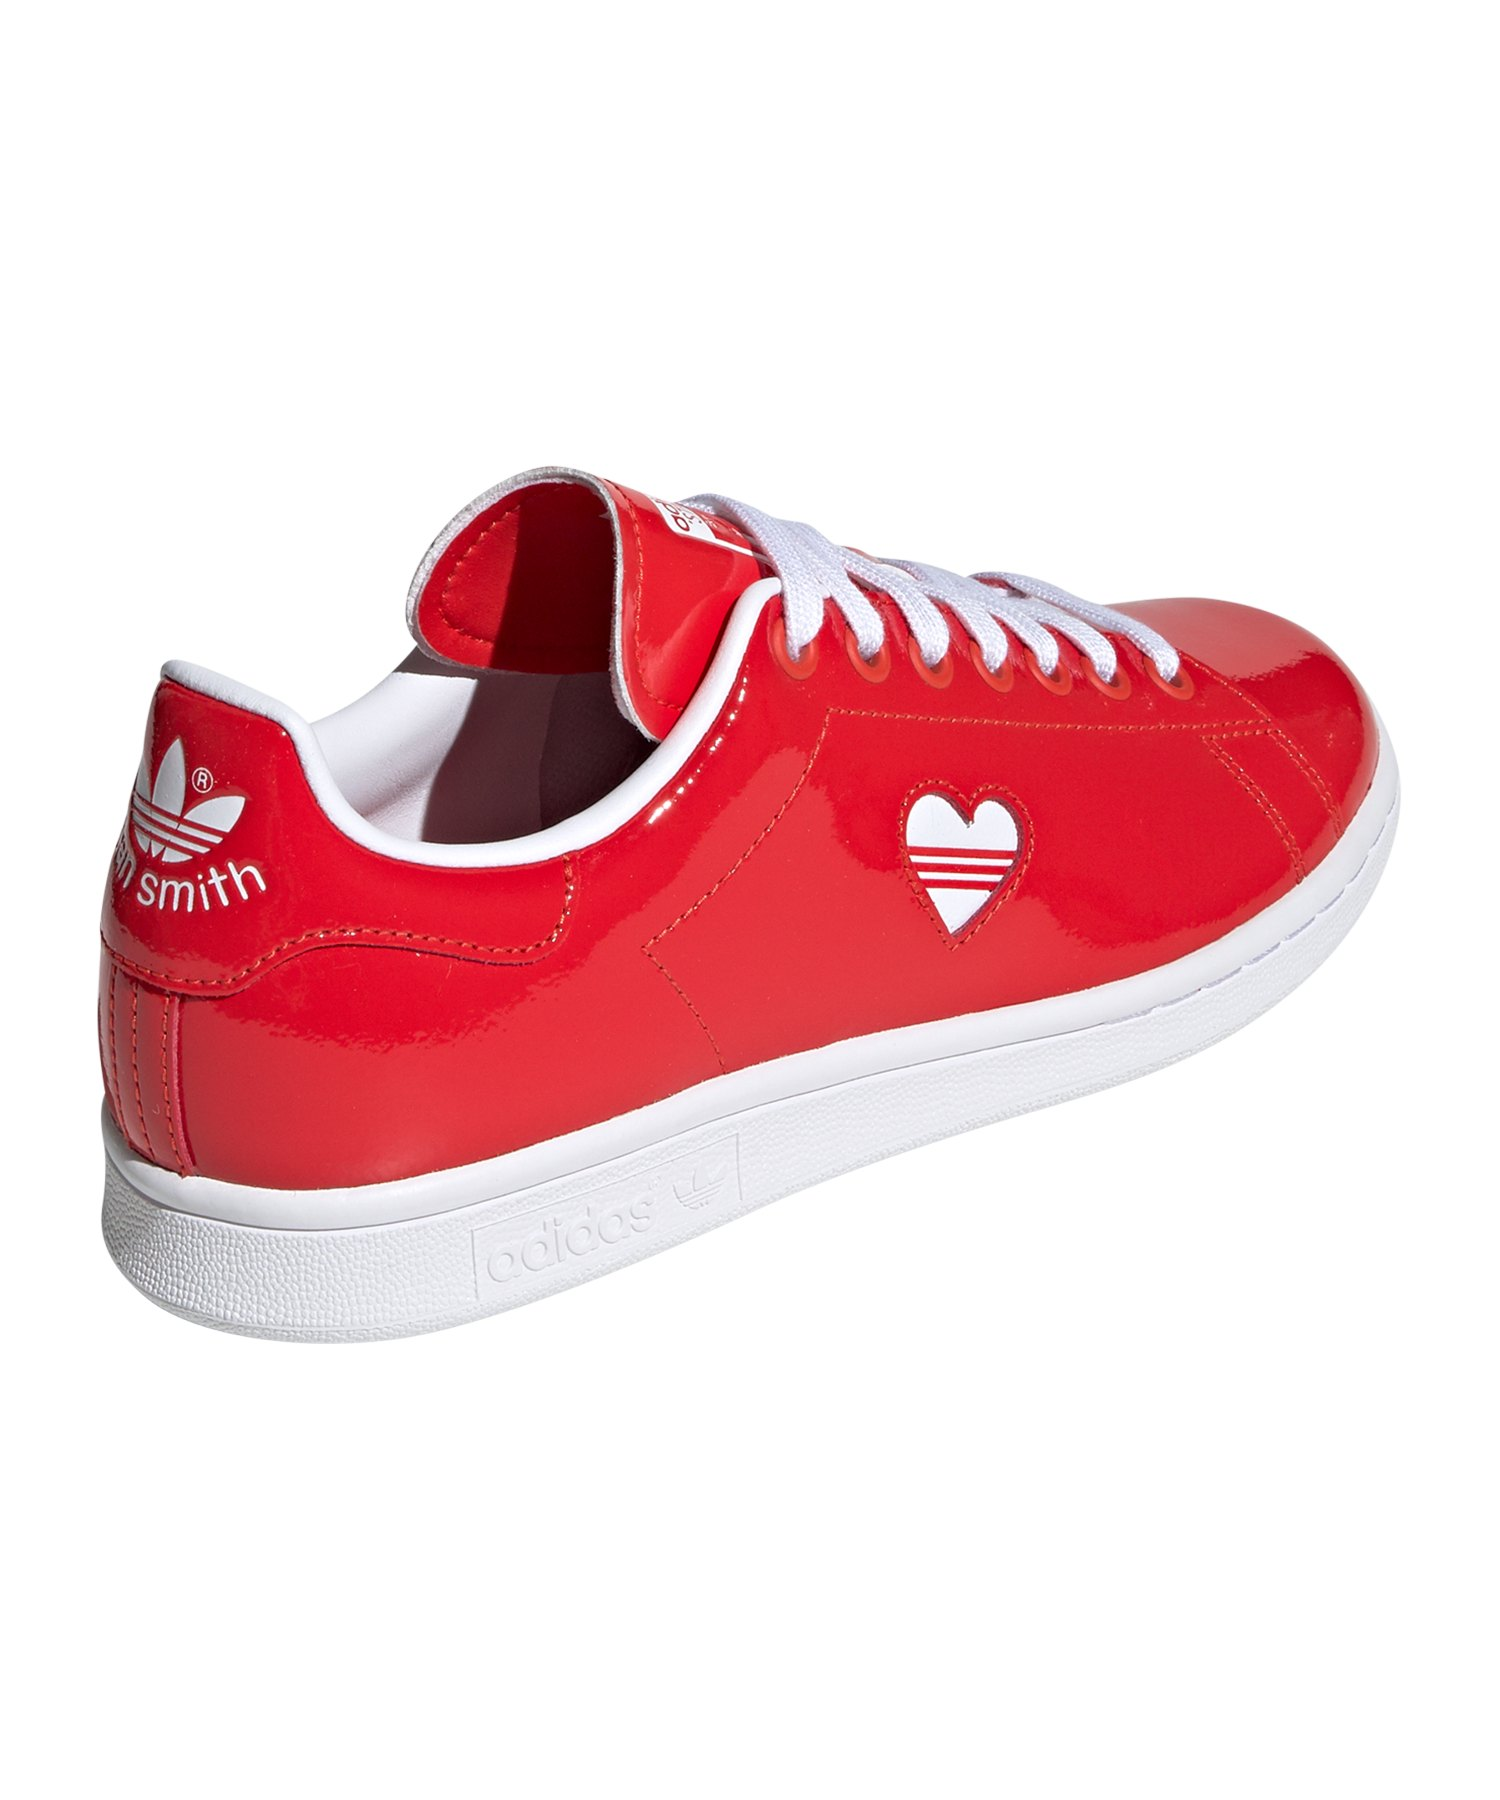 Smith Originals Adidas Damen Rot Sneaker Stan Oebxrcd SLMUVpzqG